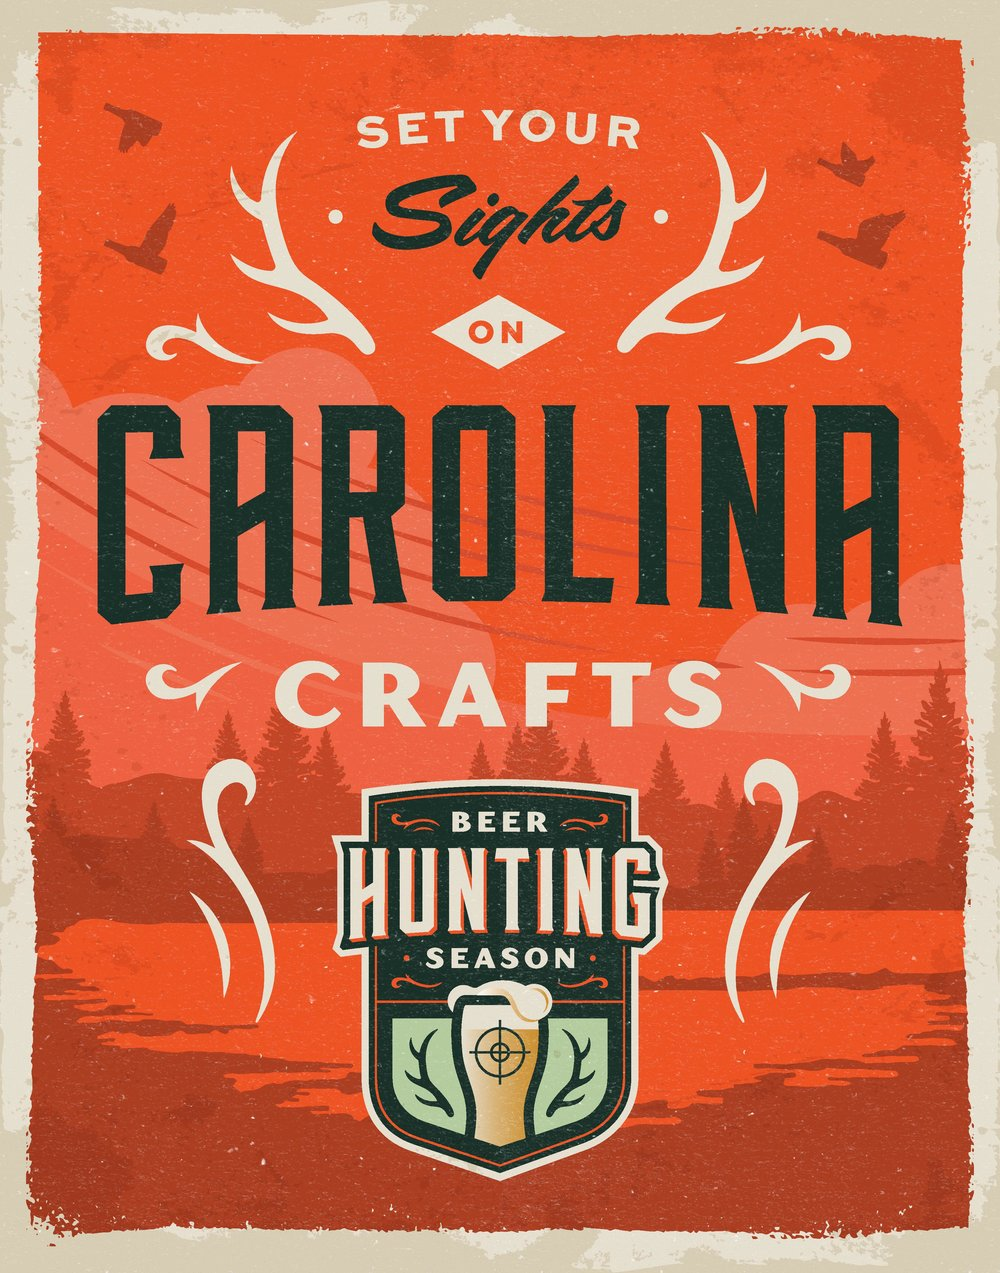 Beer Hunting Stanchions v2 (2)-page-001.jpg